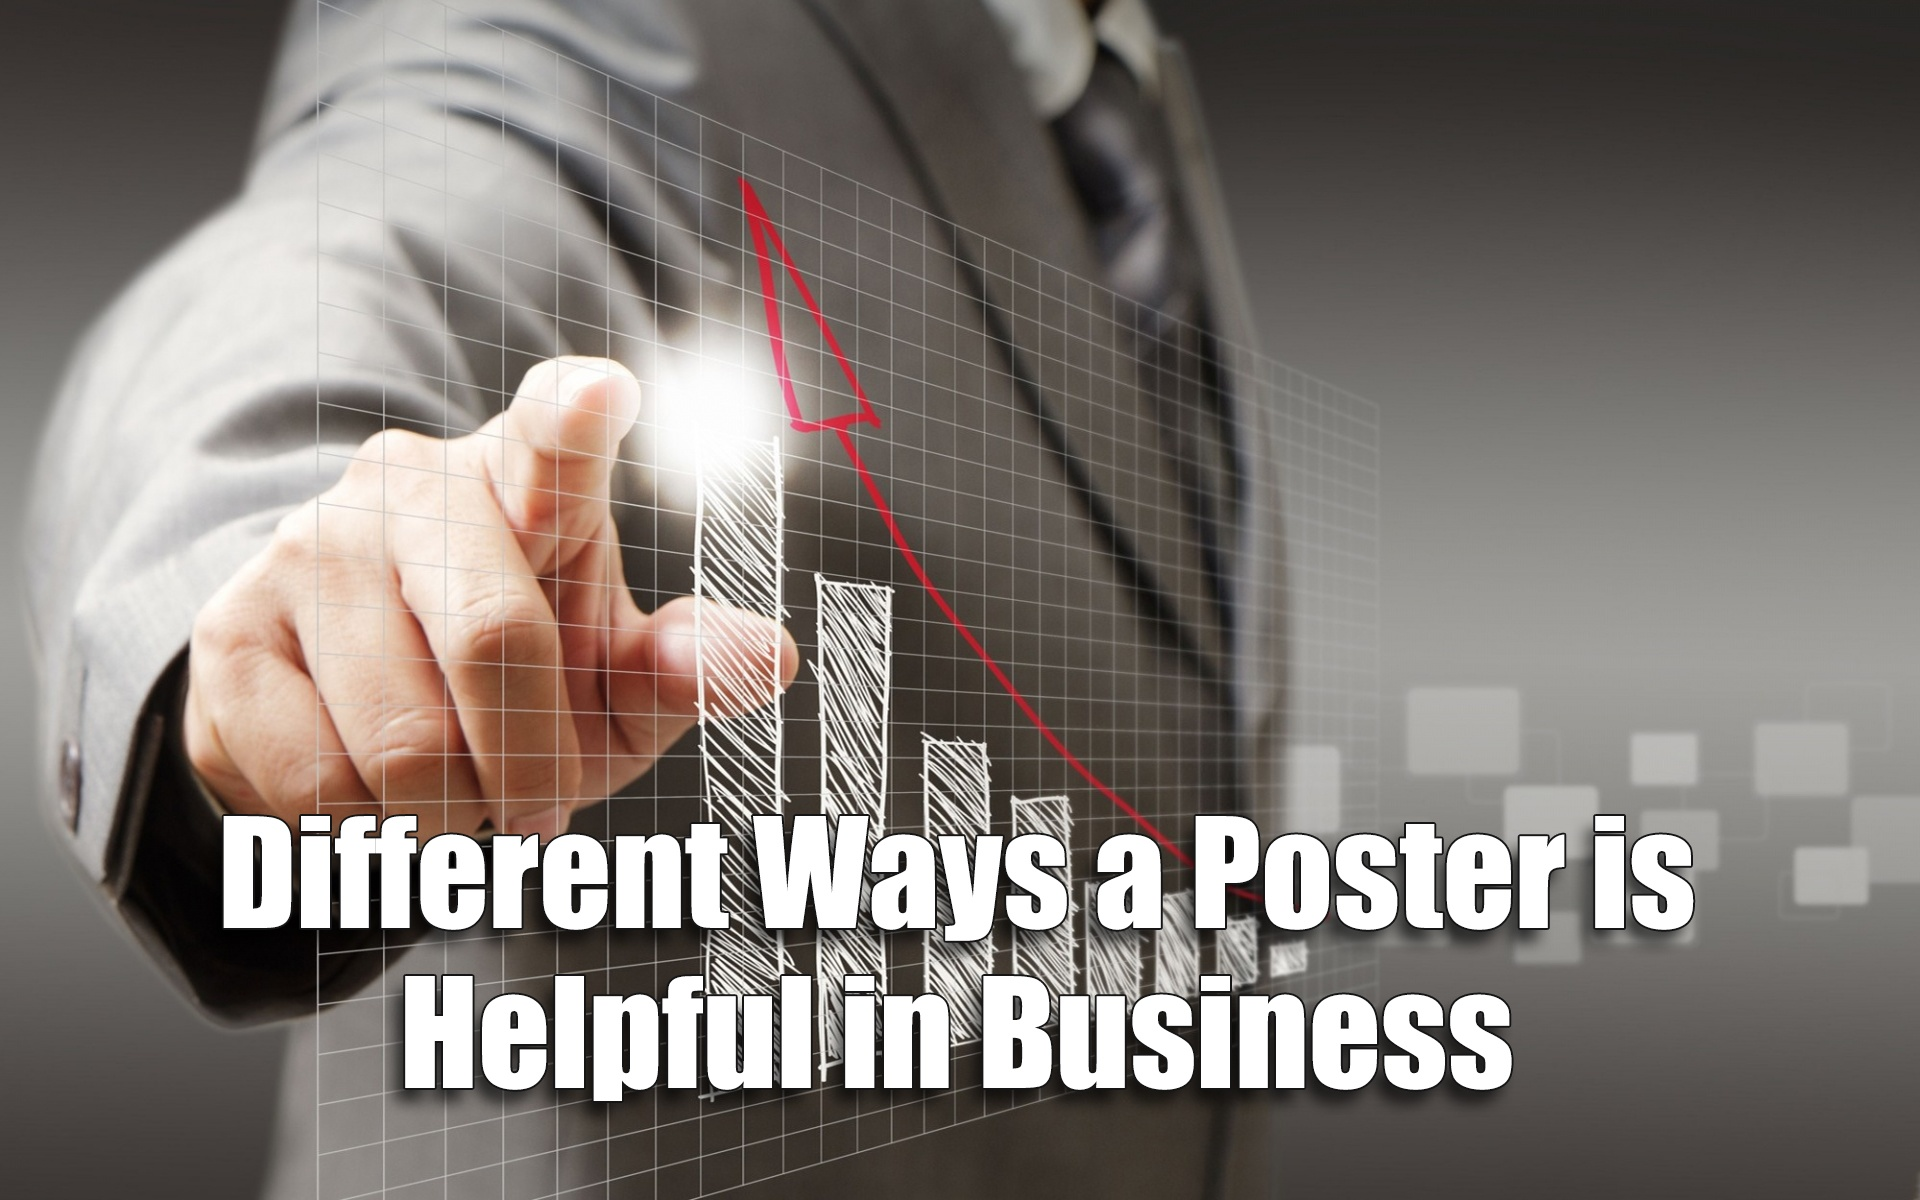 Different Ways a Poster is Helpful in Business